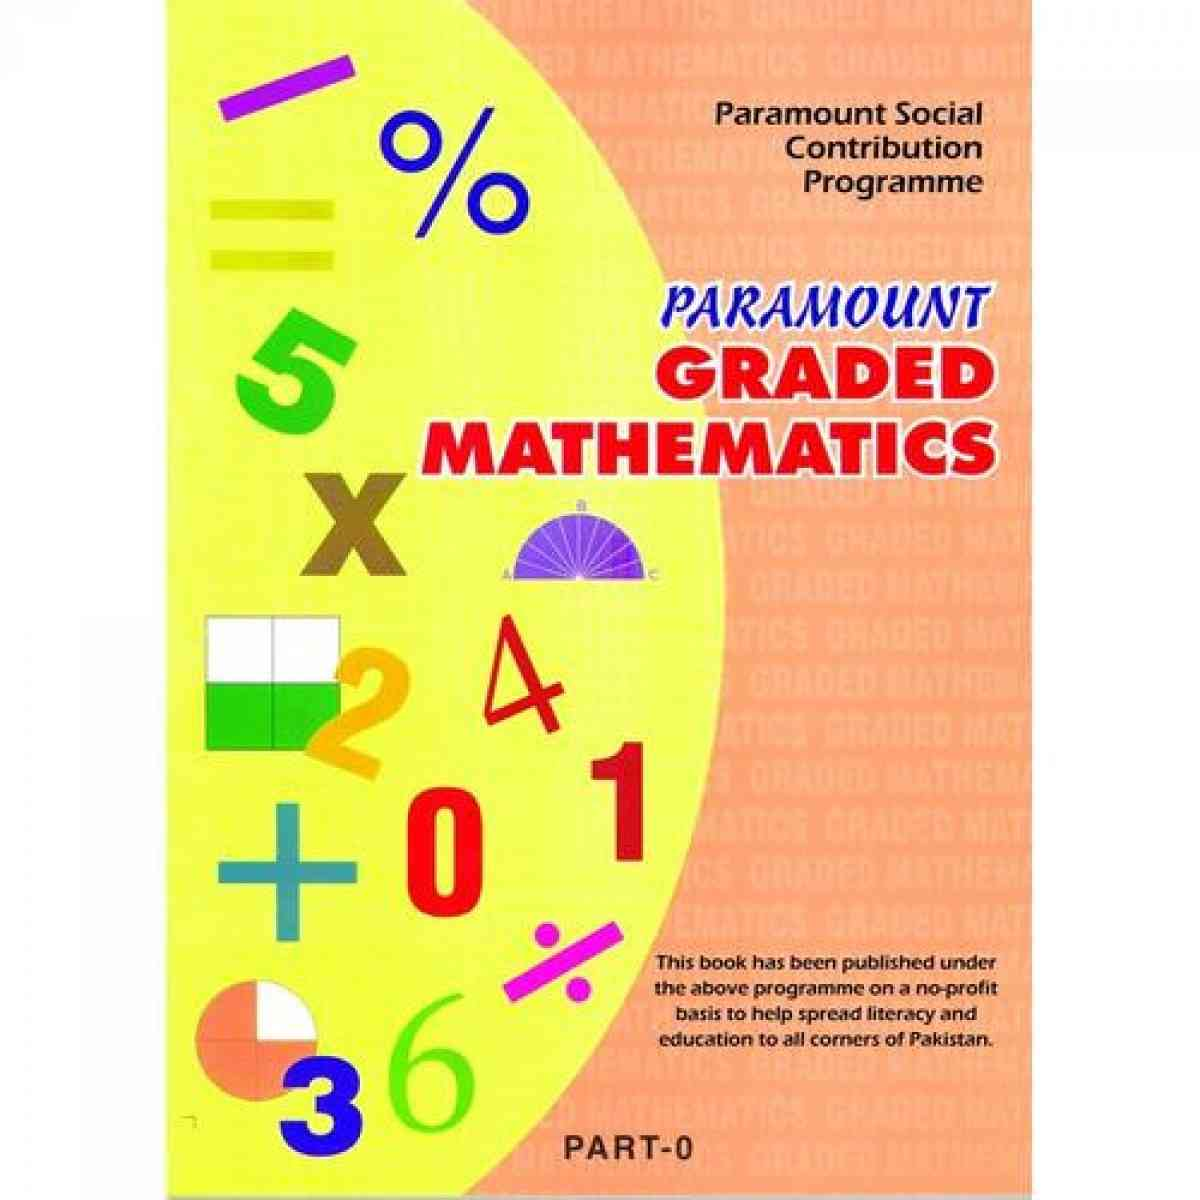 Paramount Graded Mathematics: Part 0